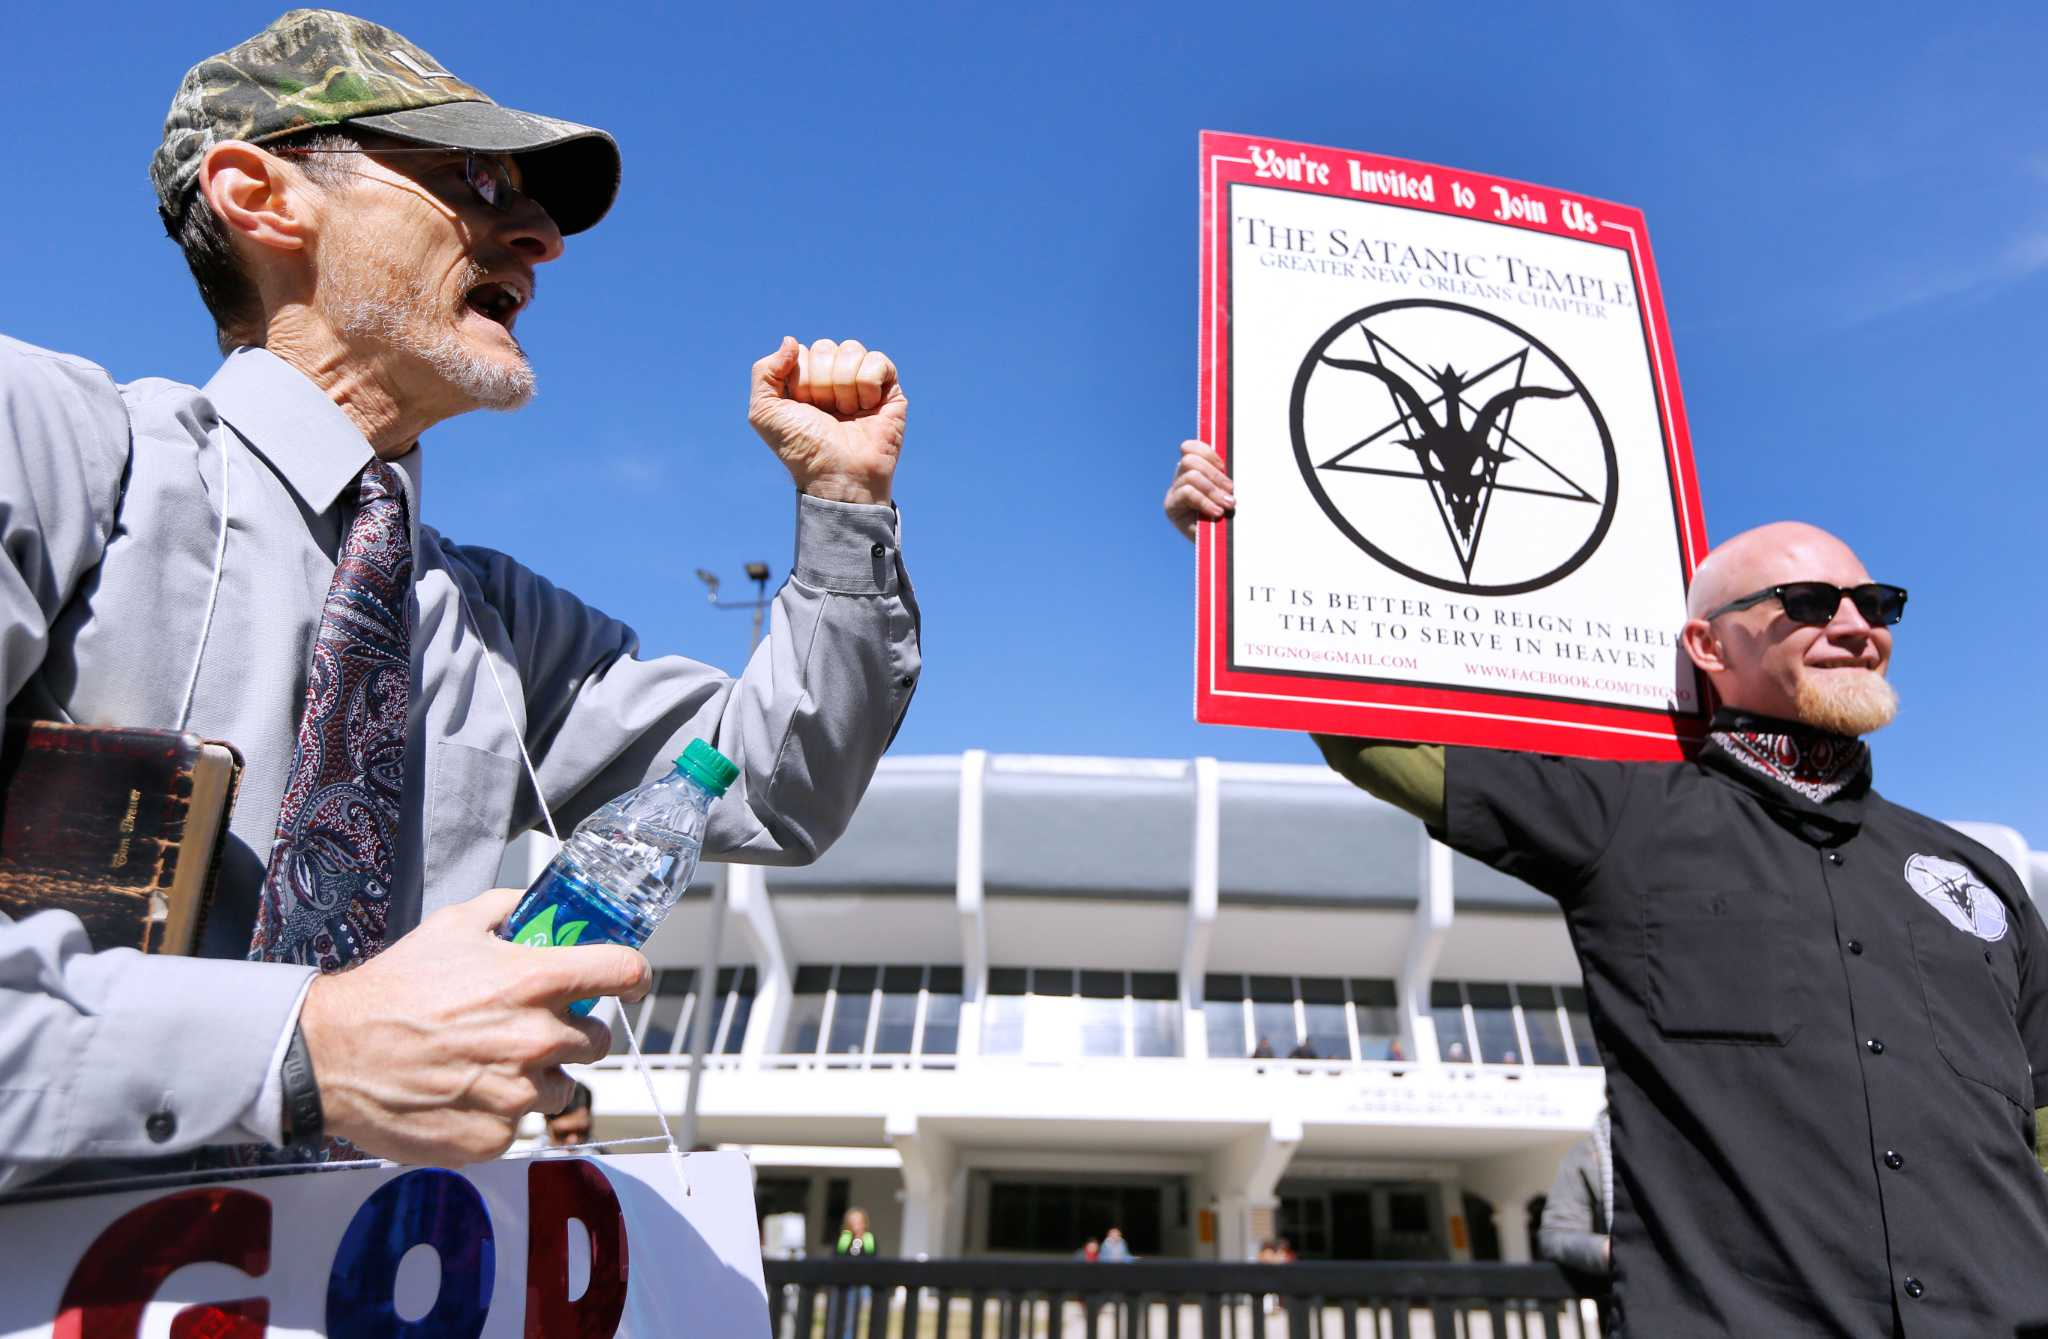 Is The Satanic Temple for real? - HoustonChronicle com